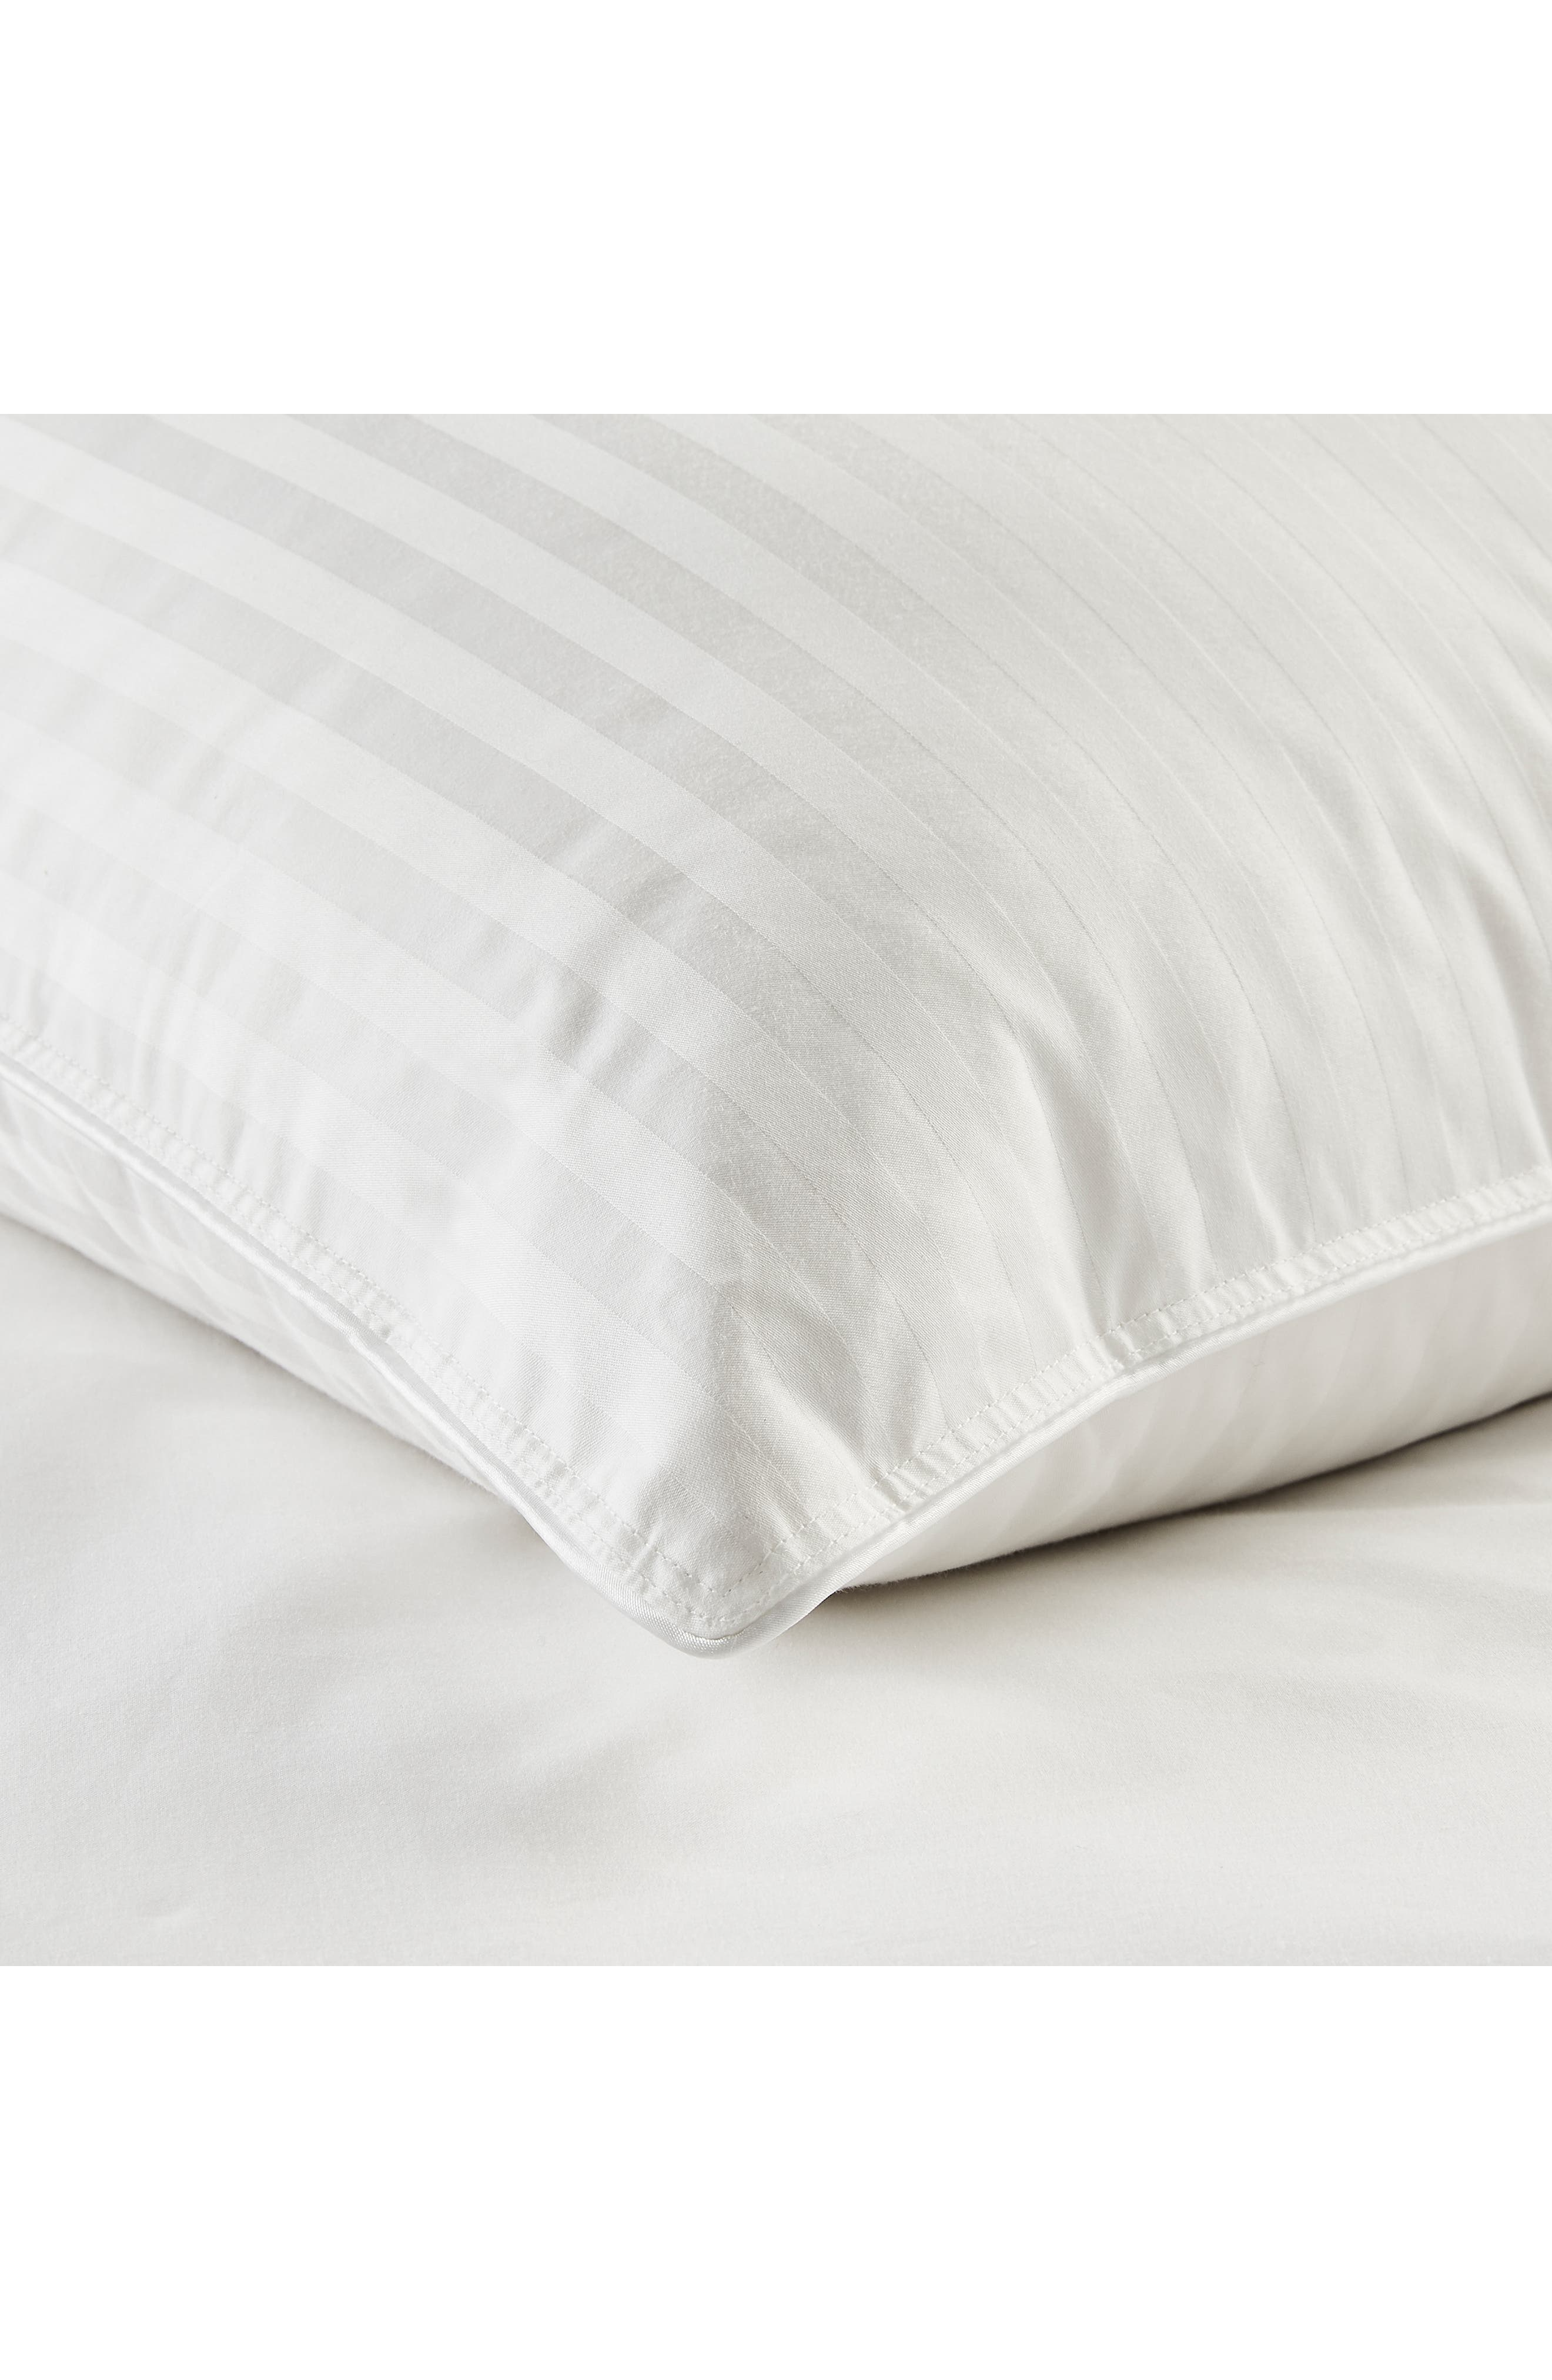 THE WHITE COMPANY,                             Firm Hungarian Goose Down & Feather Pillow,                             Alternate thumbnail 2, color,                             IVORY